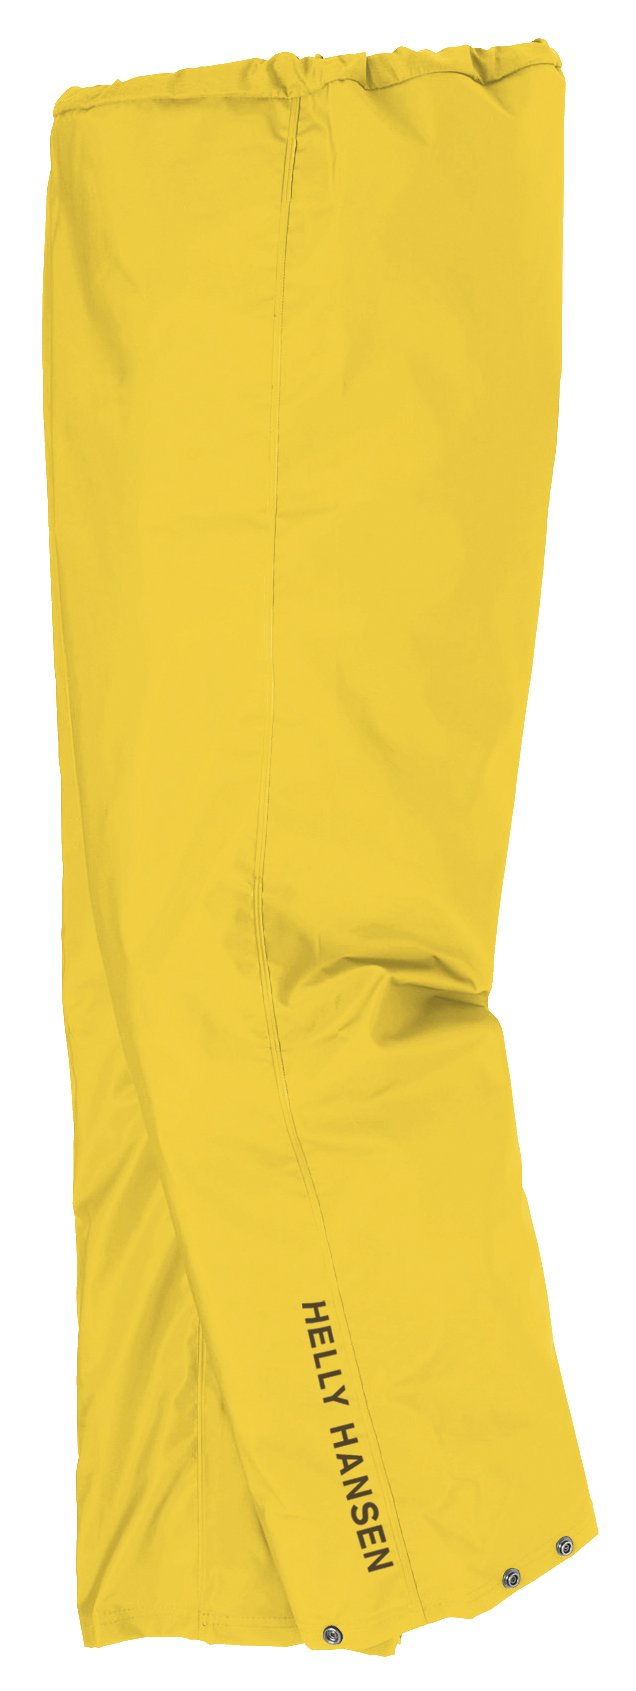 Helly Hansen Workwear Workwear Men's Mandal Rain Pant, Light Yellow, Large